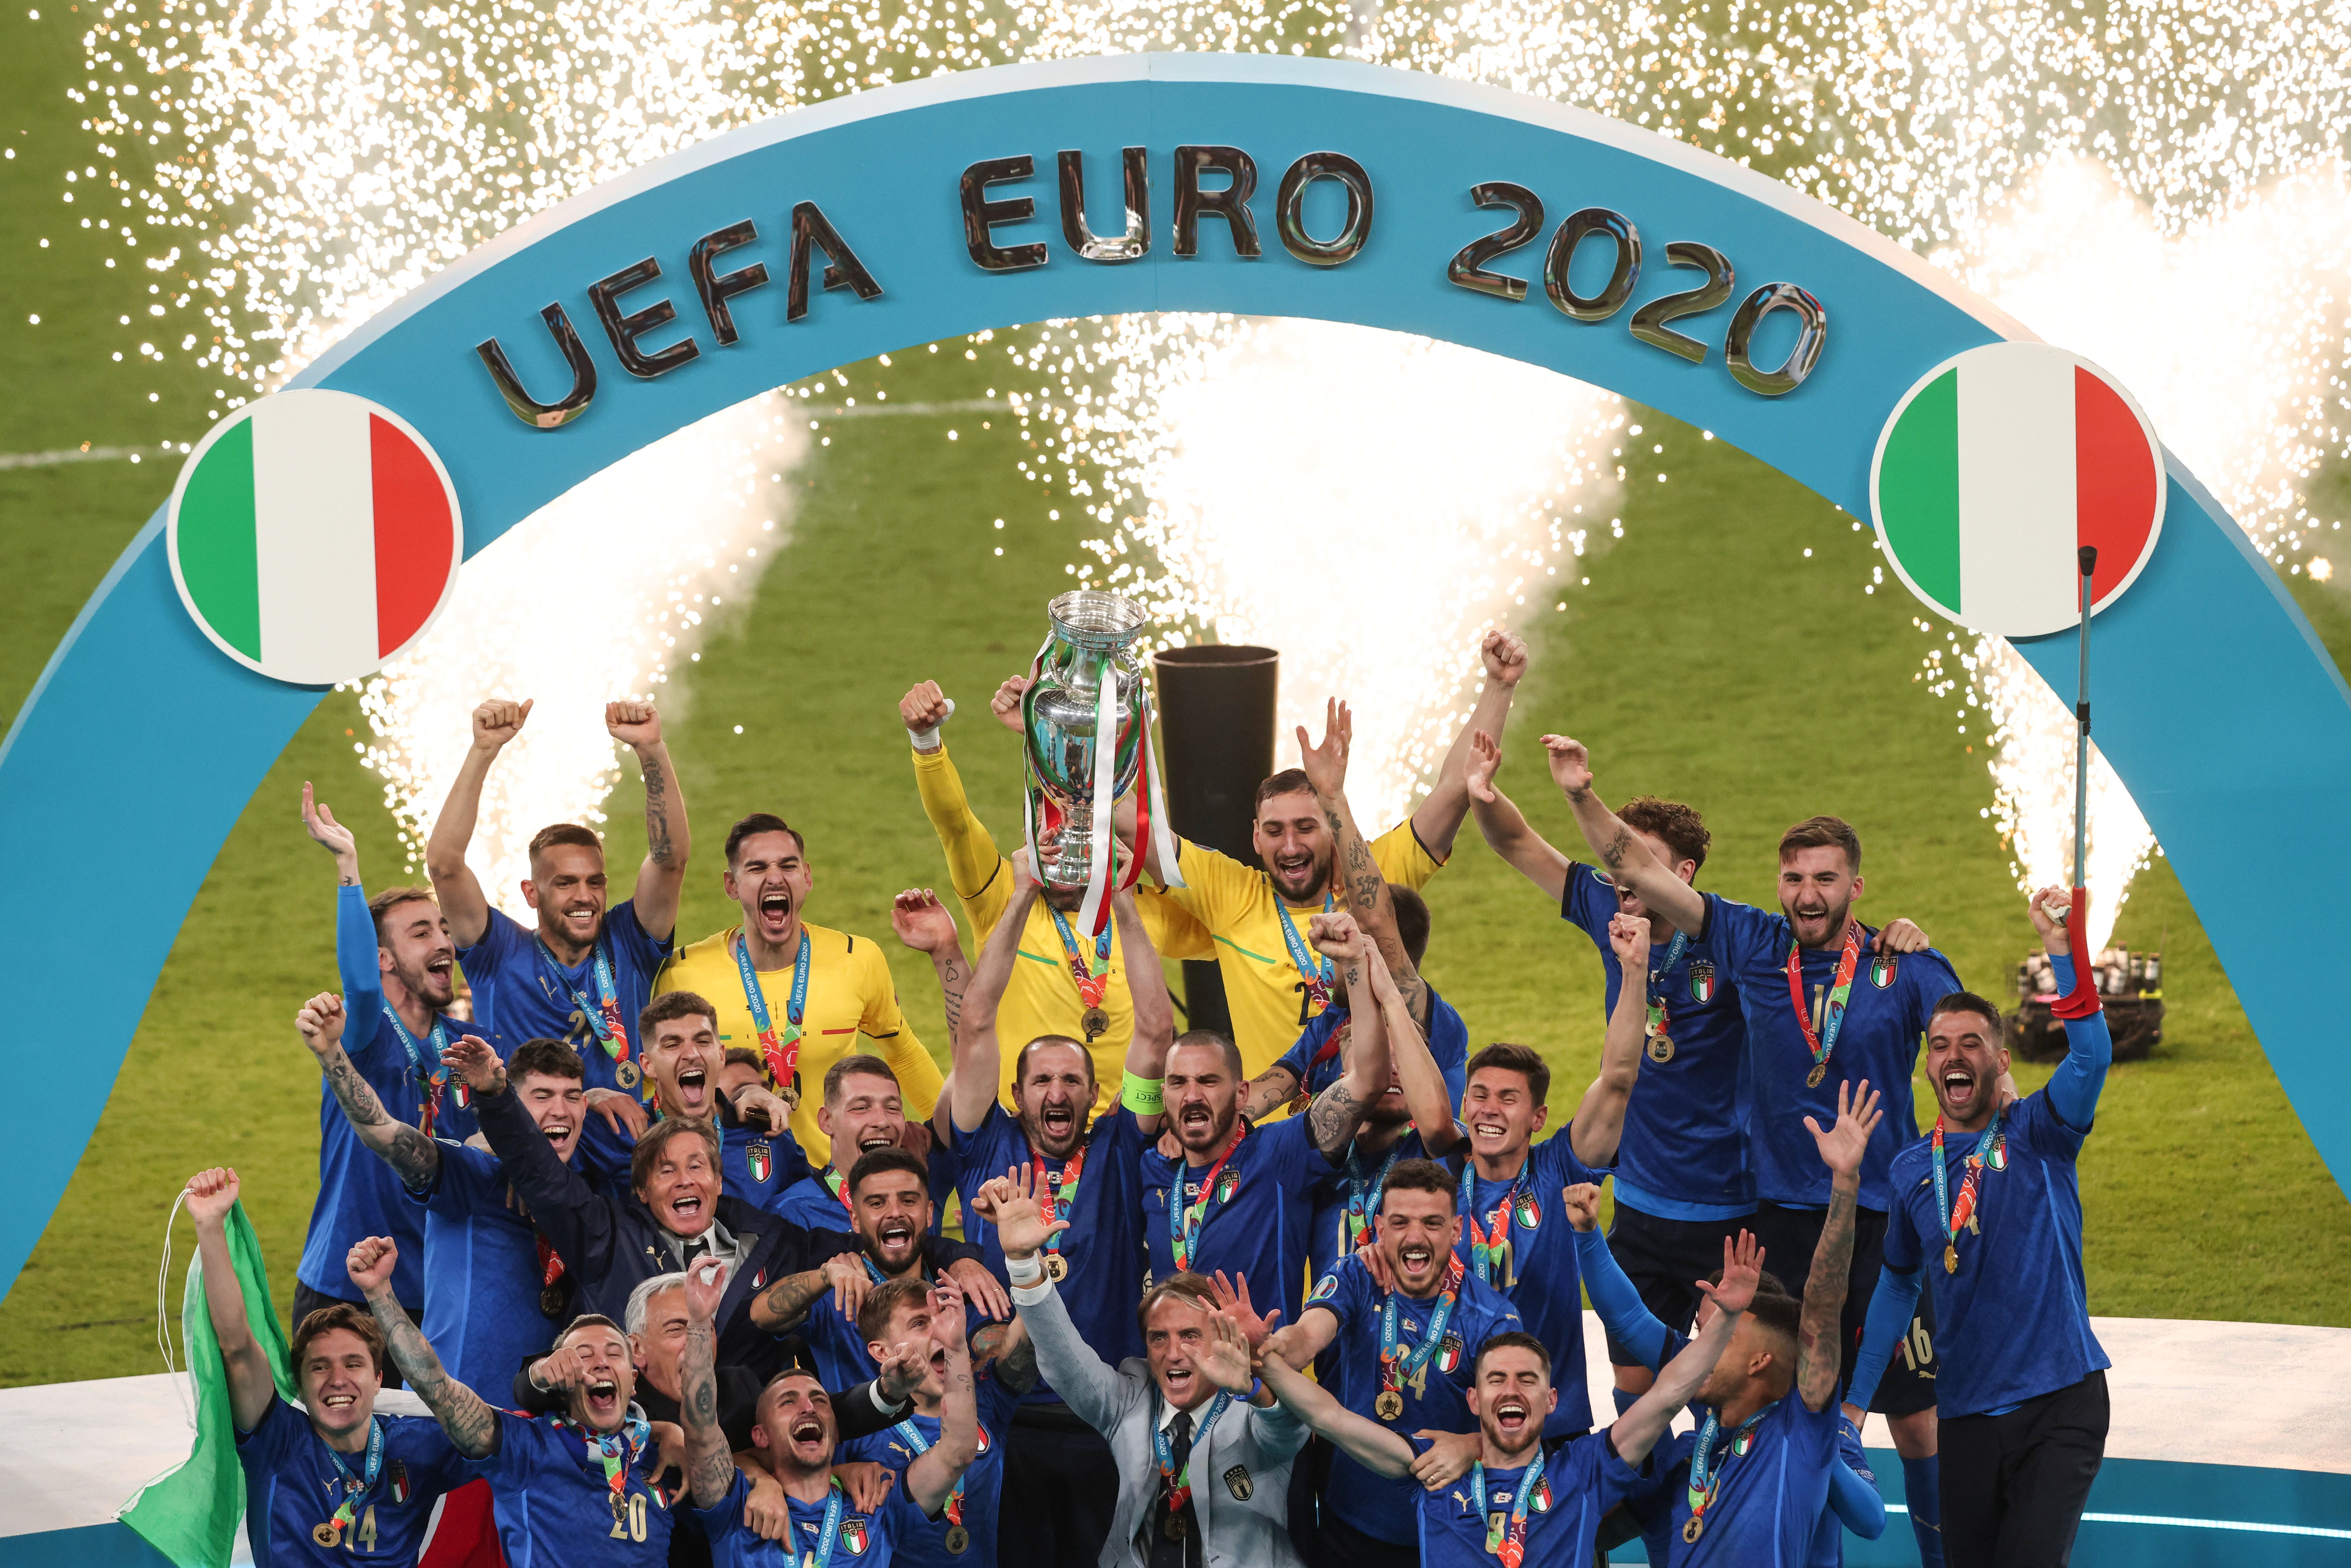 Italy lifts the trophy - UEFA Euro 2020: Final